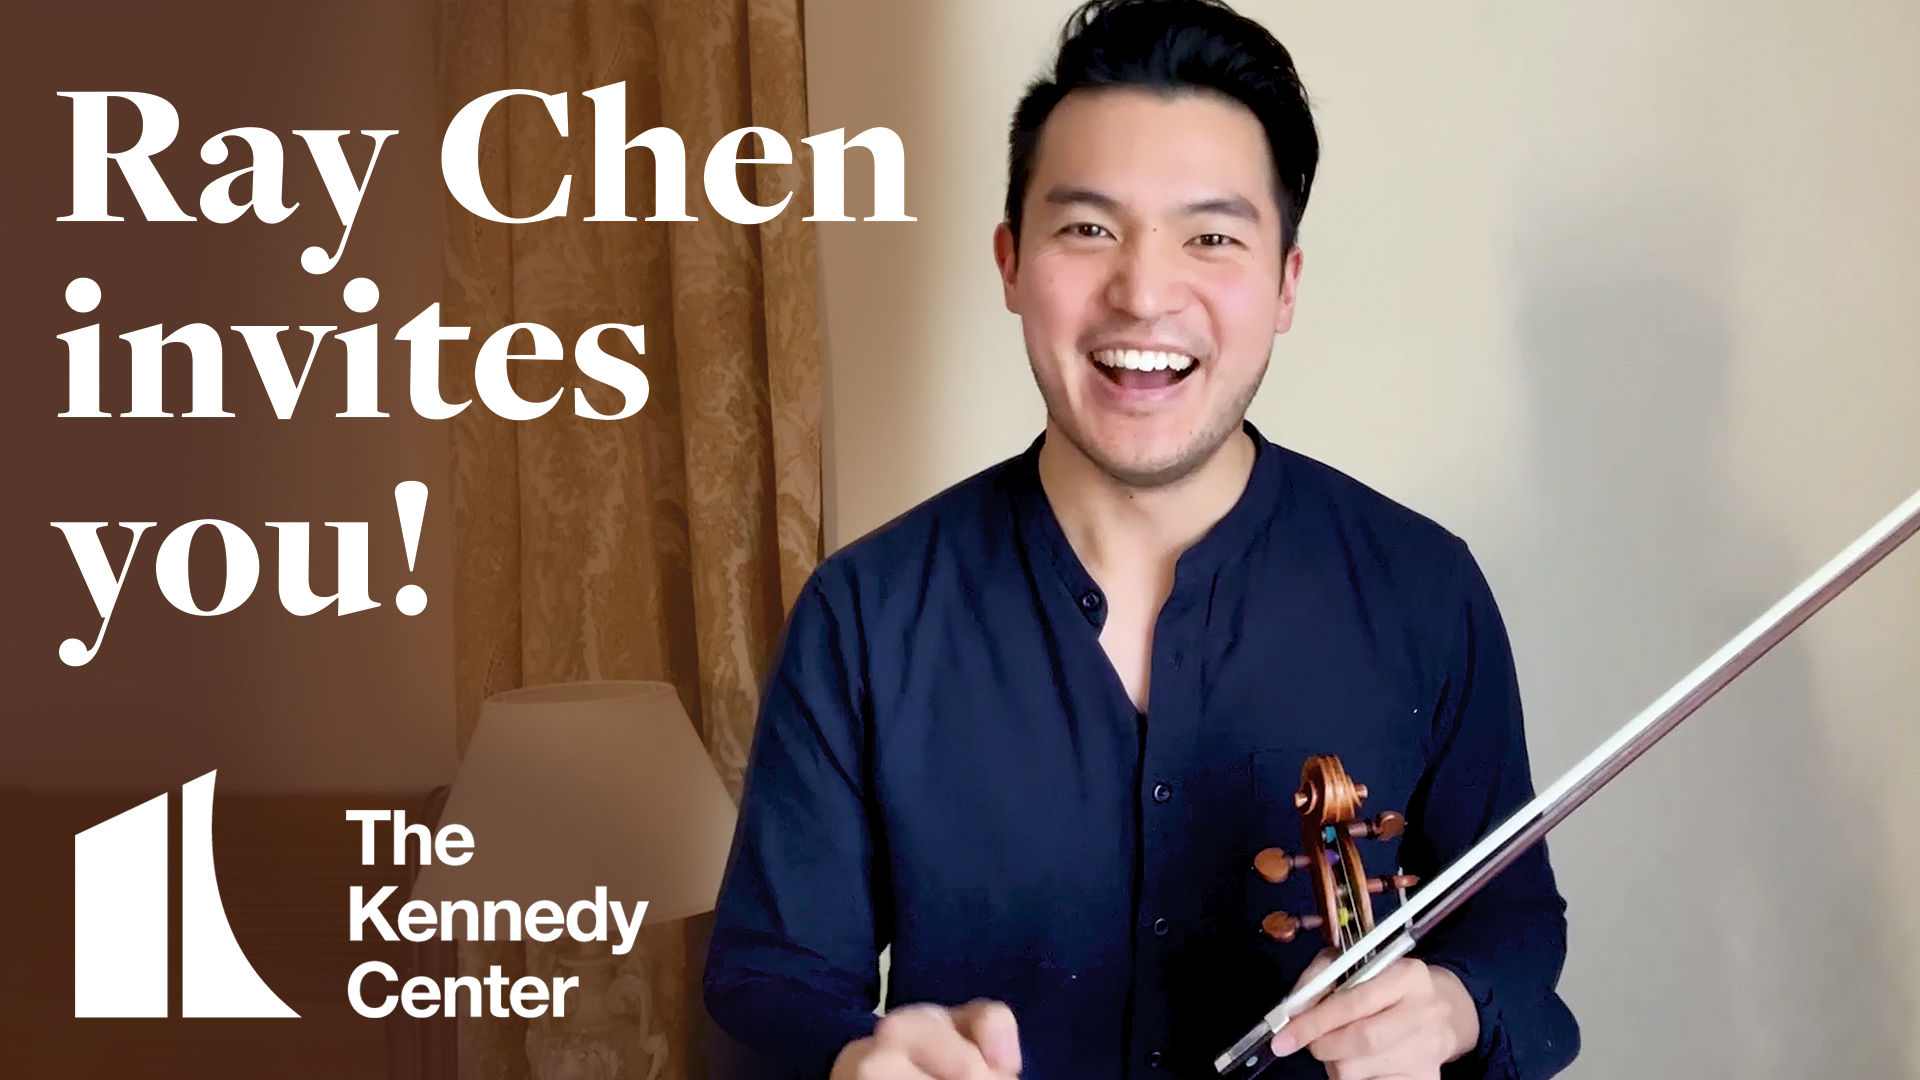 Ray Chen invites you! | Mendelssohn's Violin Concerto at The Kennedy Center